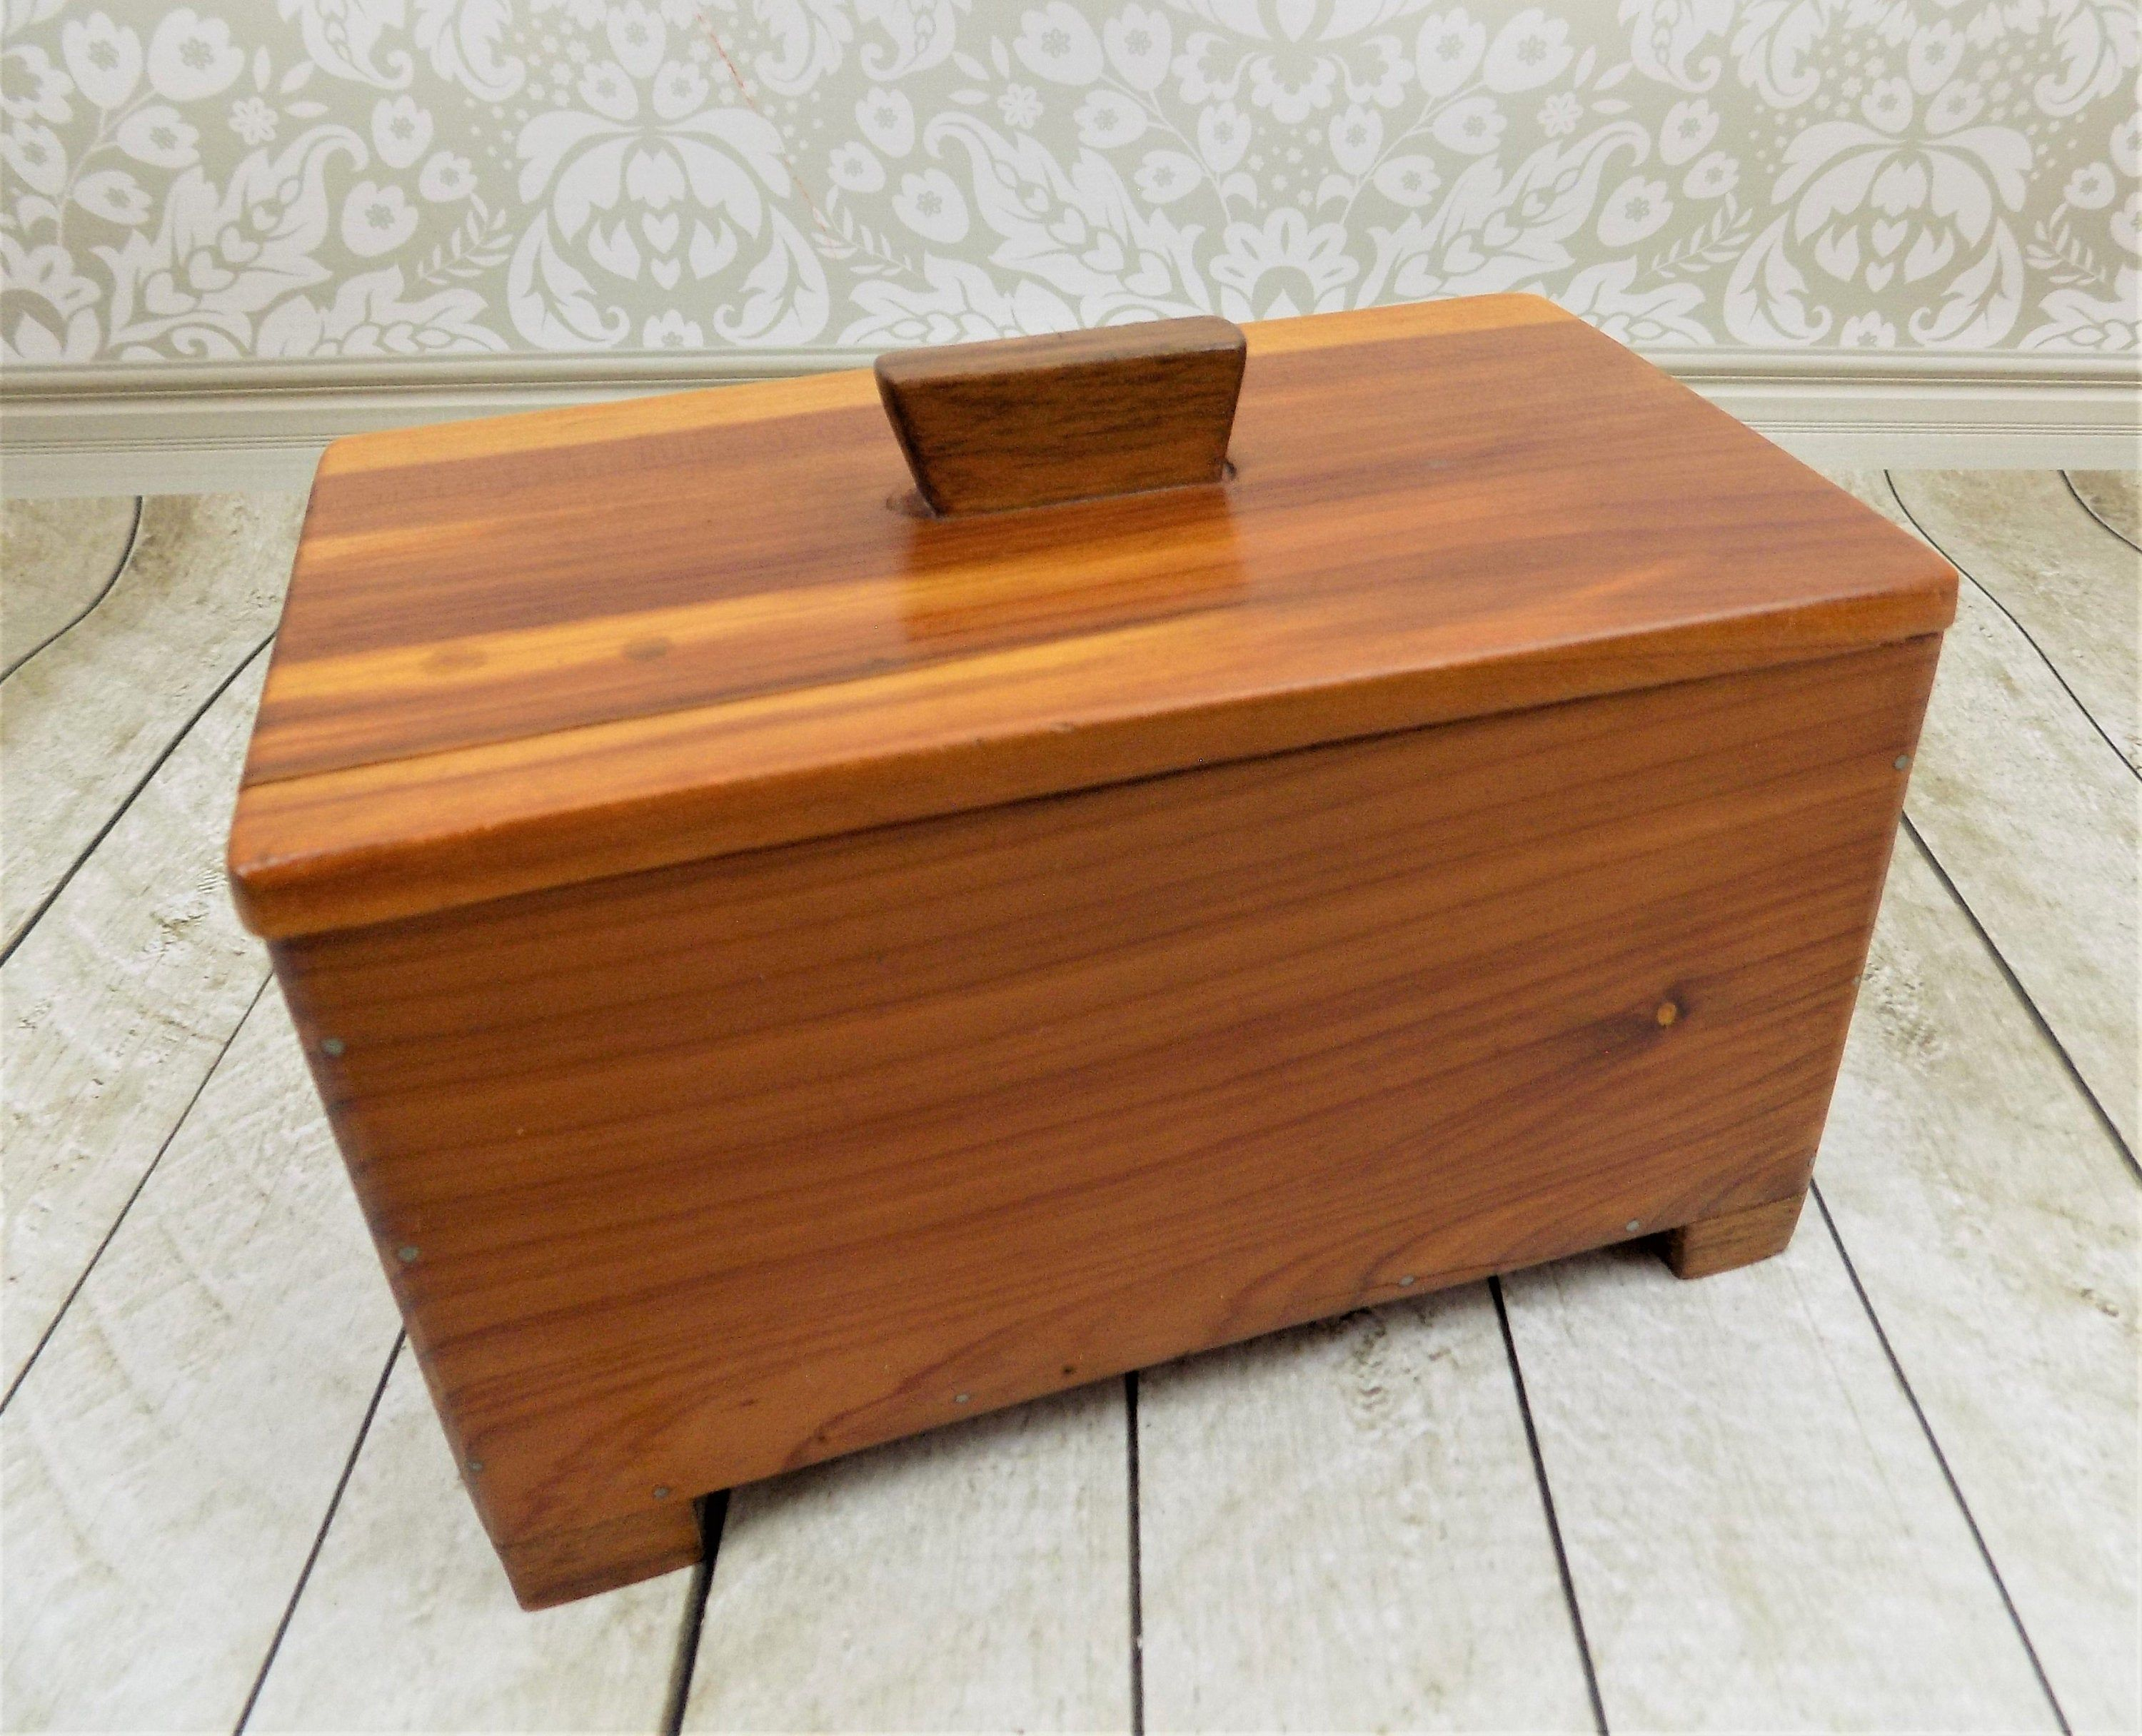 Jewelry Box Wooden Box Gift Box Stash Box Handmade Slide Top Card Box Dove Tail Joints Handmade in the USA 4 by 6 inches